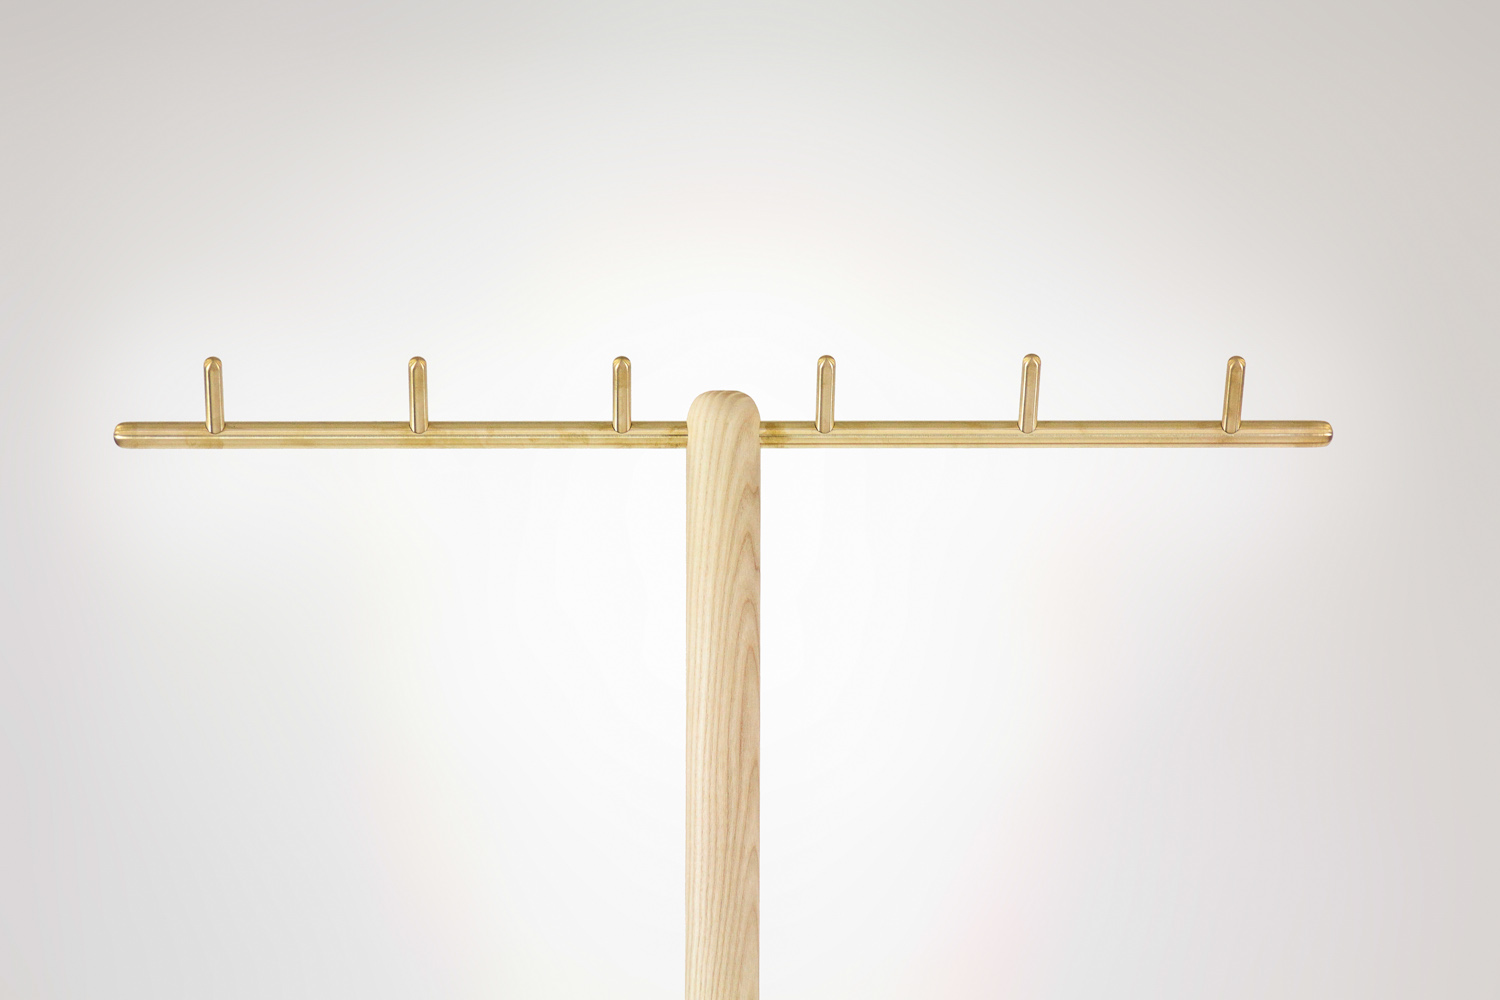 Codolagni Avignon Bench Coat rack-9